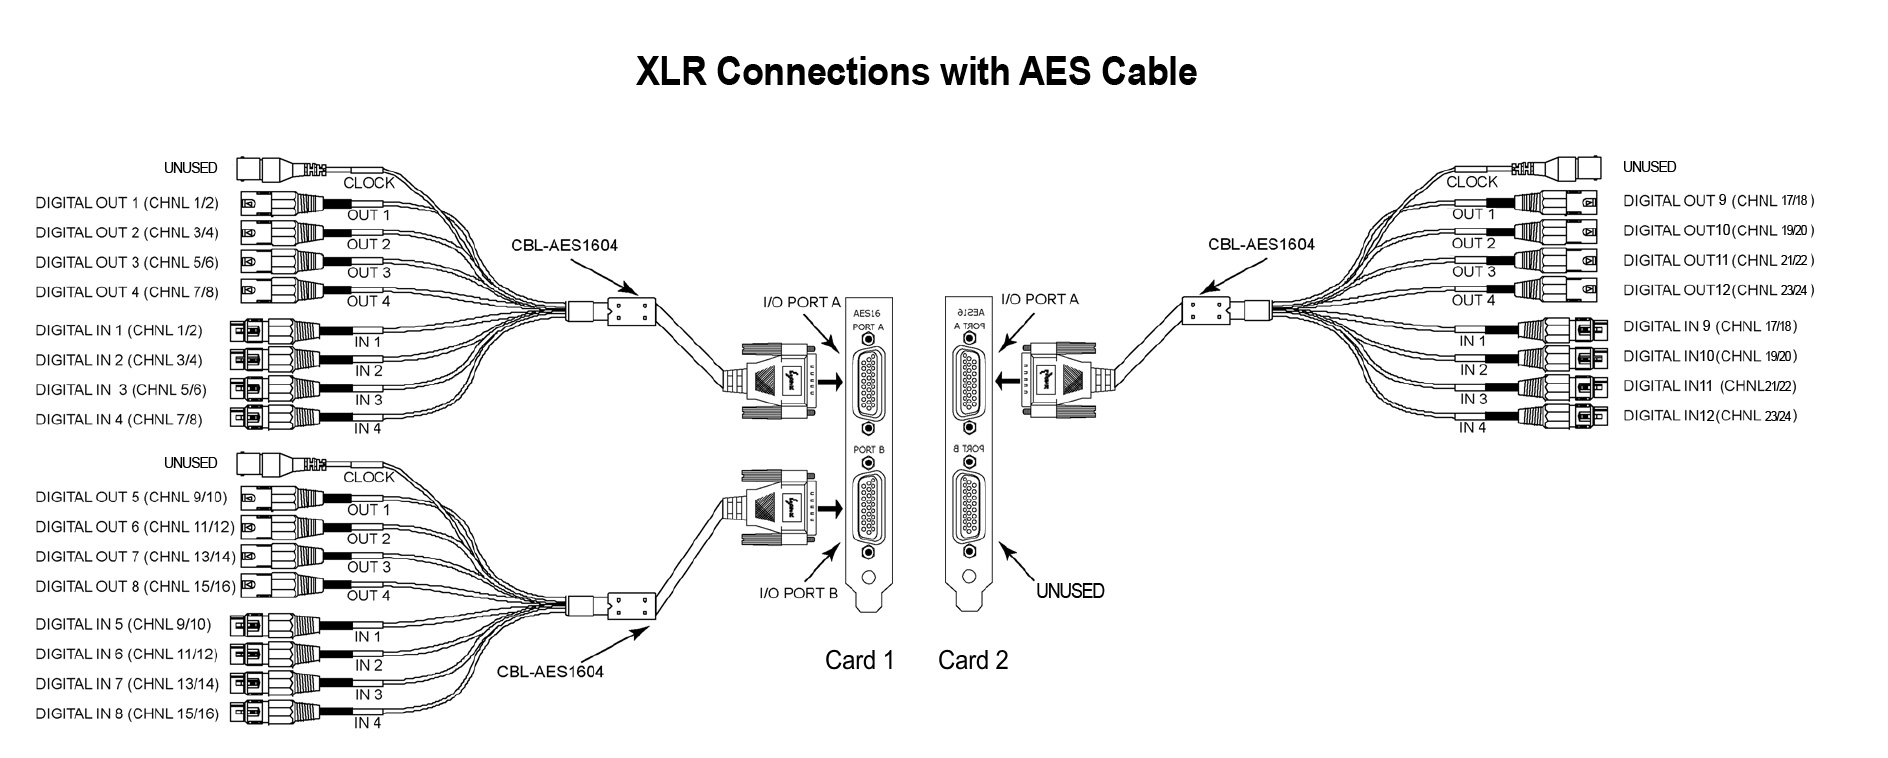 HARDWARE 20INSTALLATION on network wire diagram